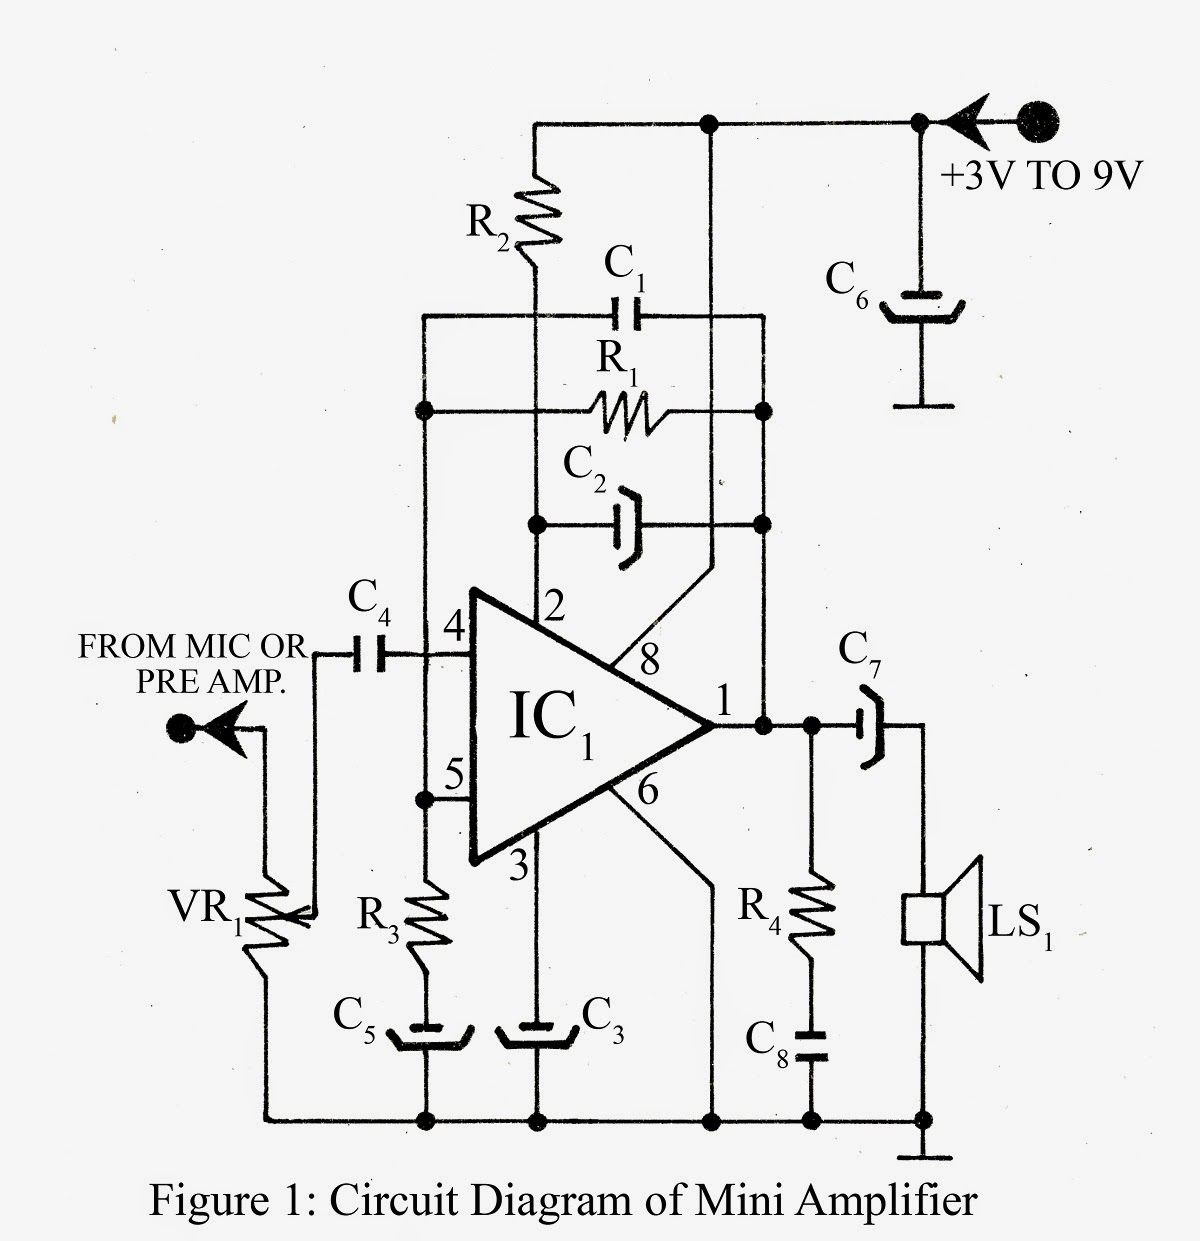 small resolution of mini amplifier circuit diagram electronic projects ic based audio mini amplifier